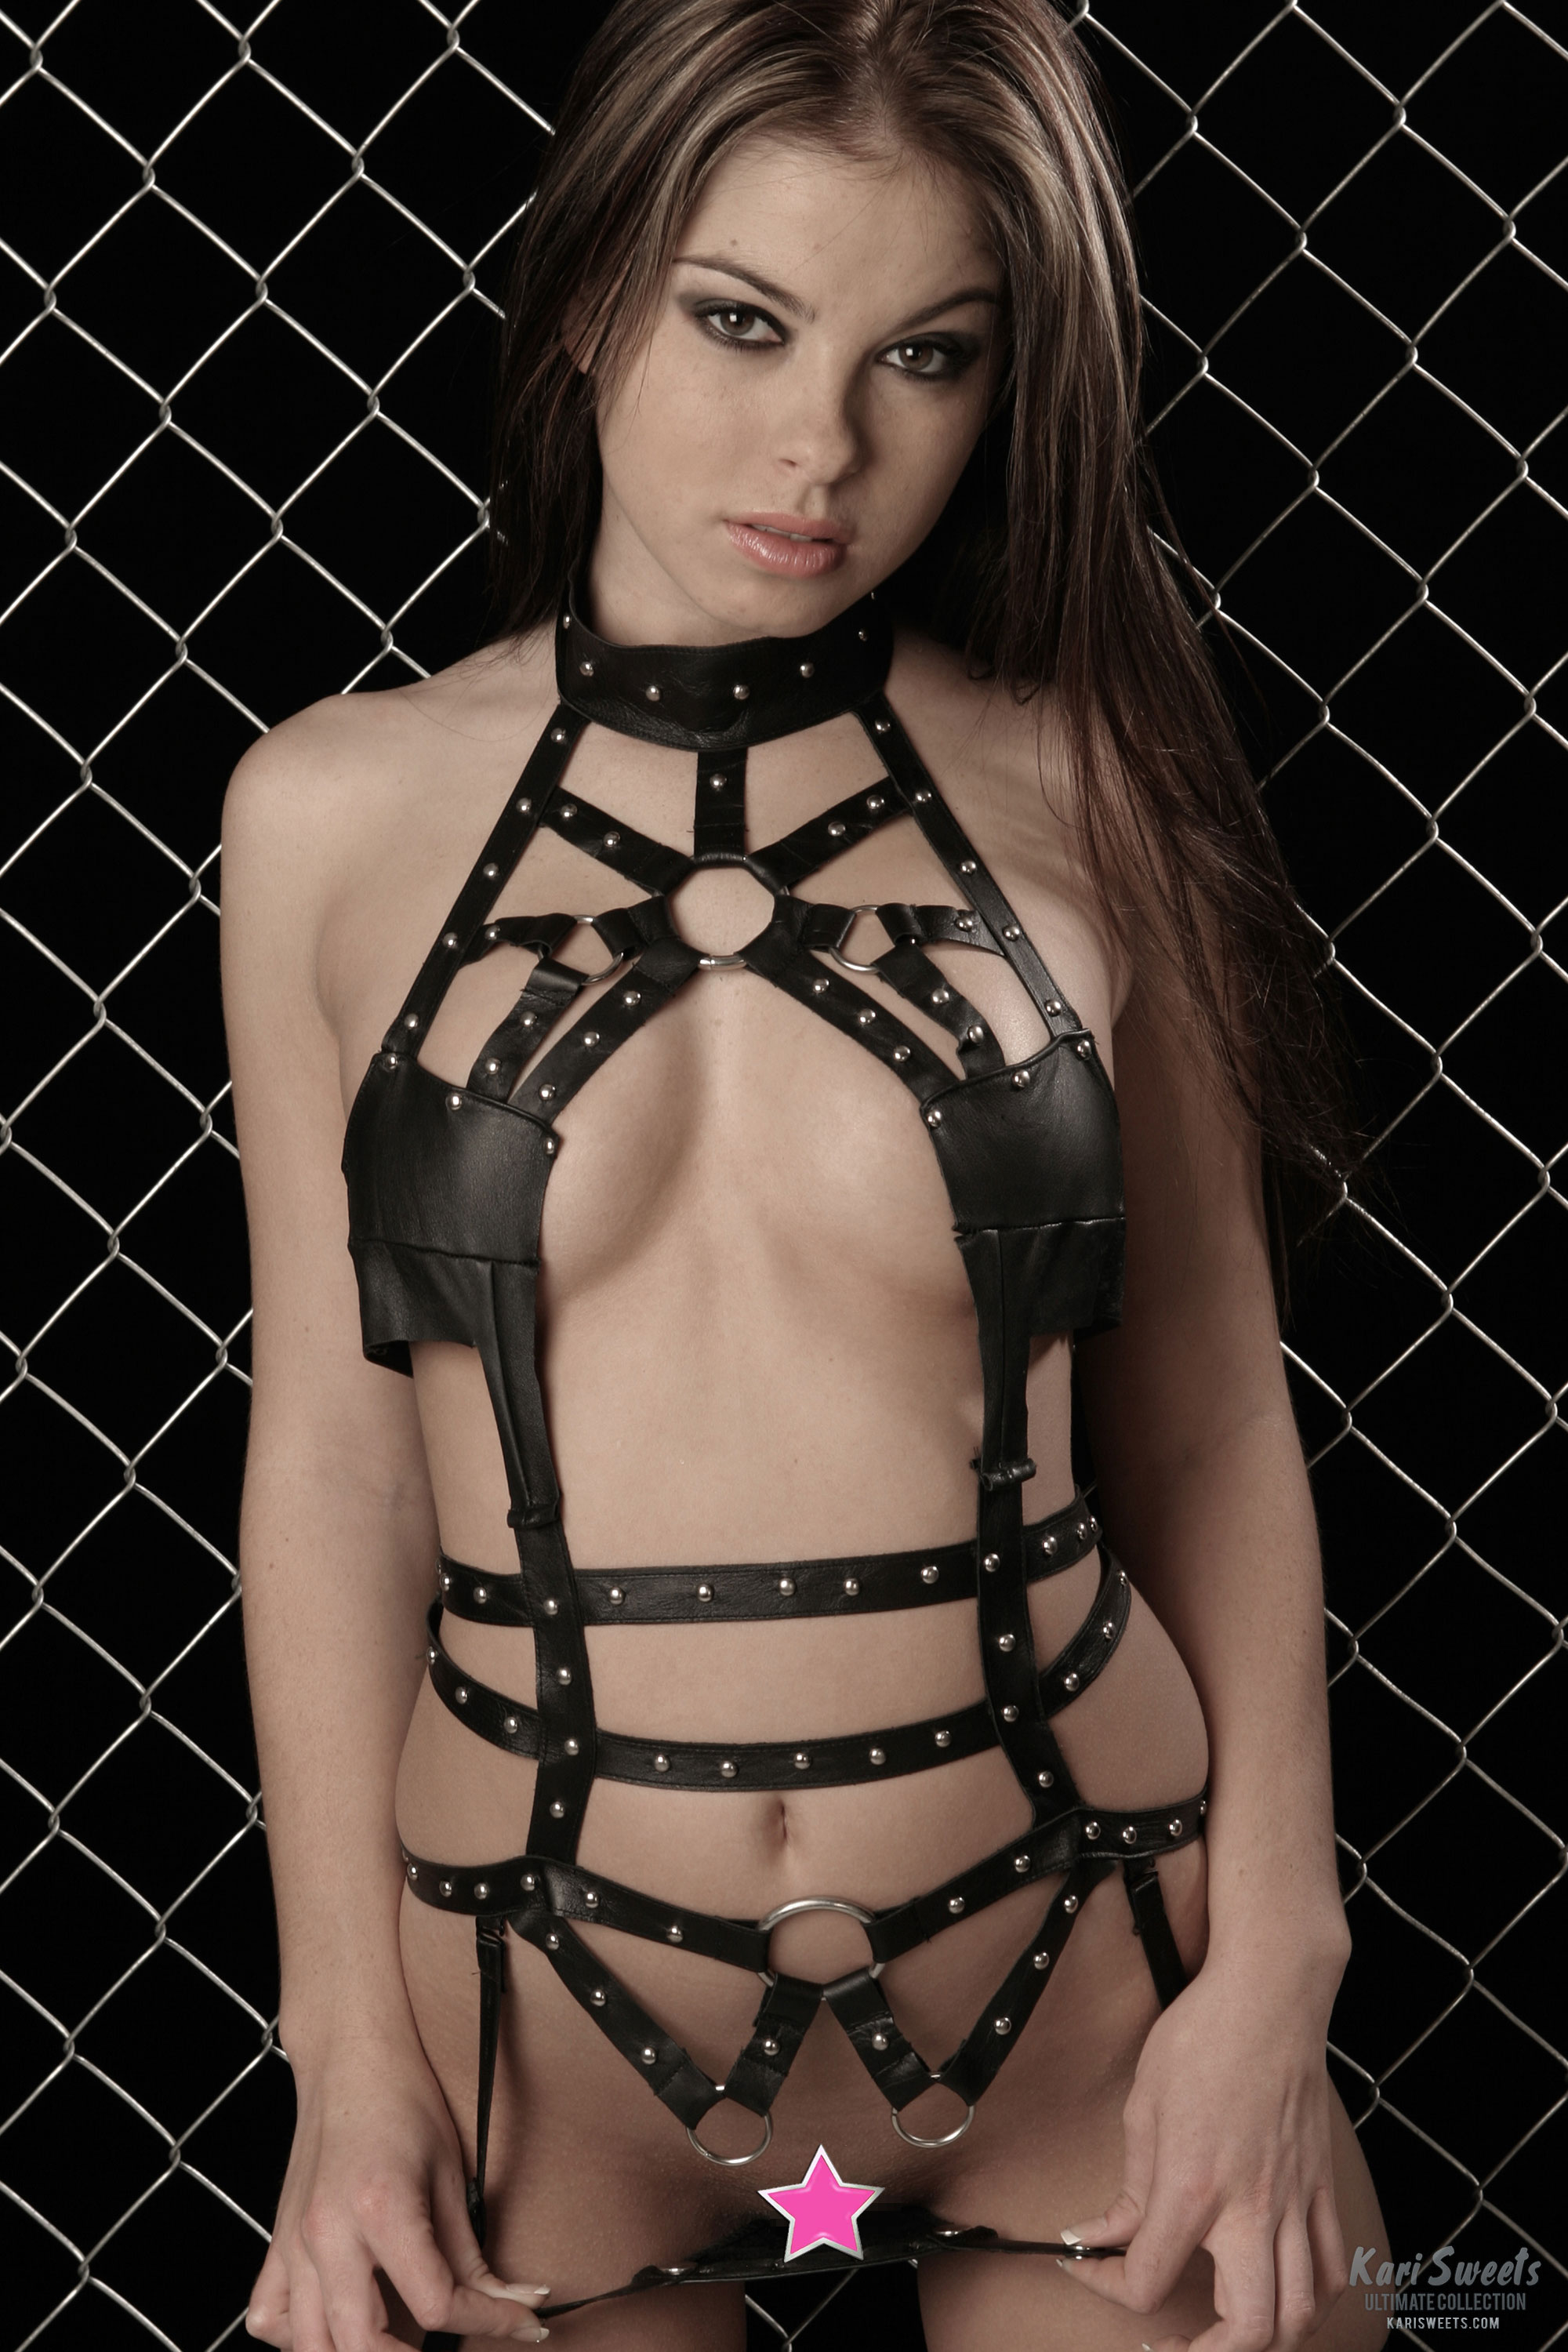 Kari Sweets Leather and Chains – Ultimate Collection